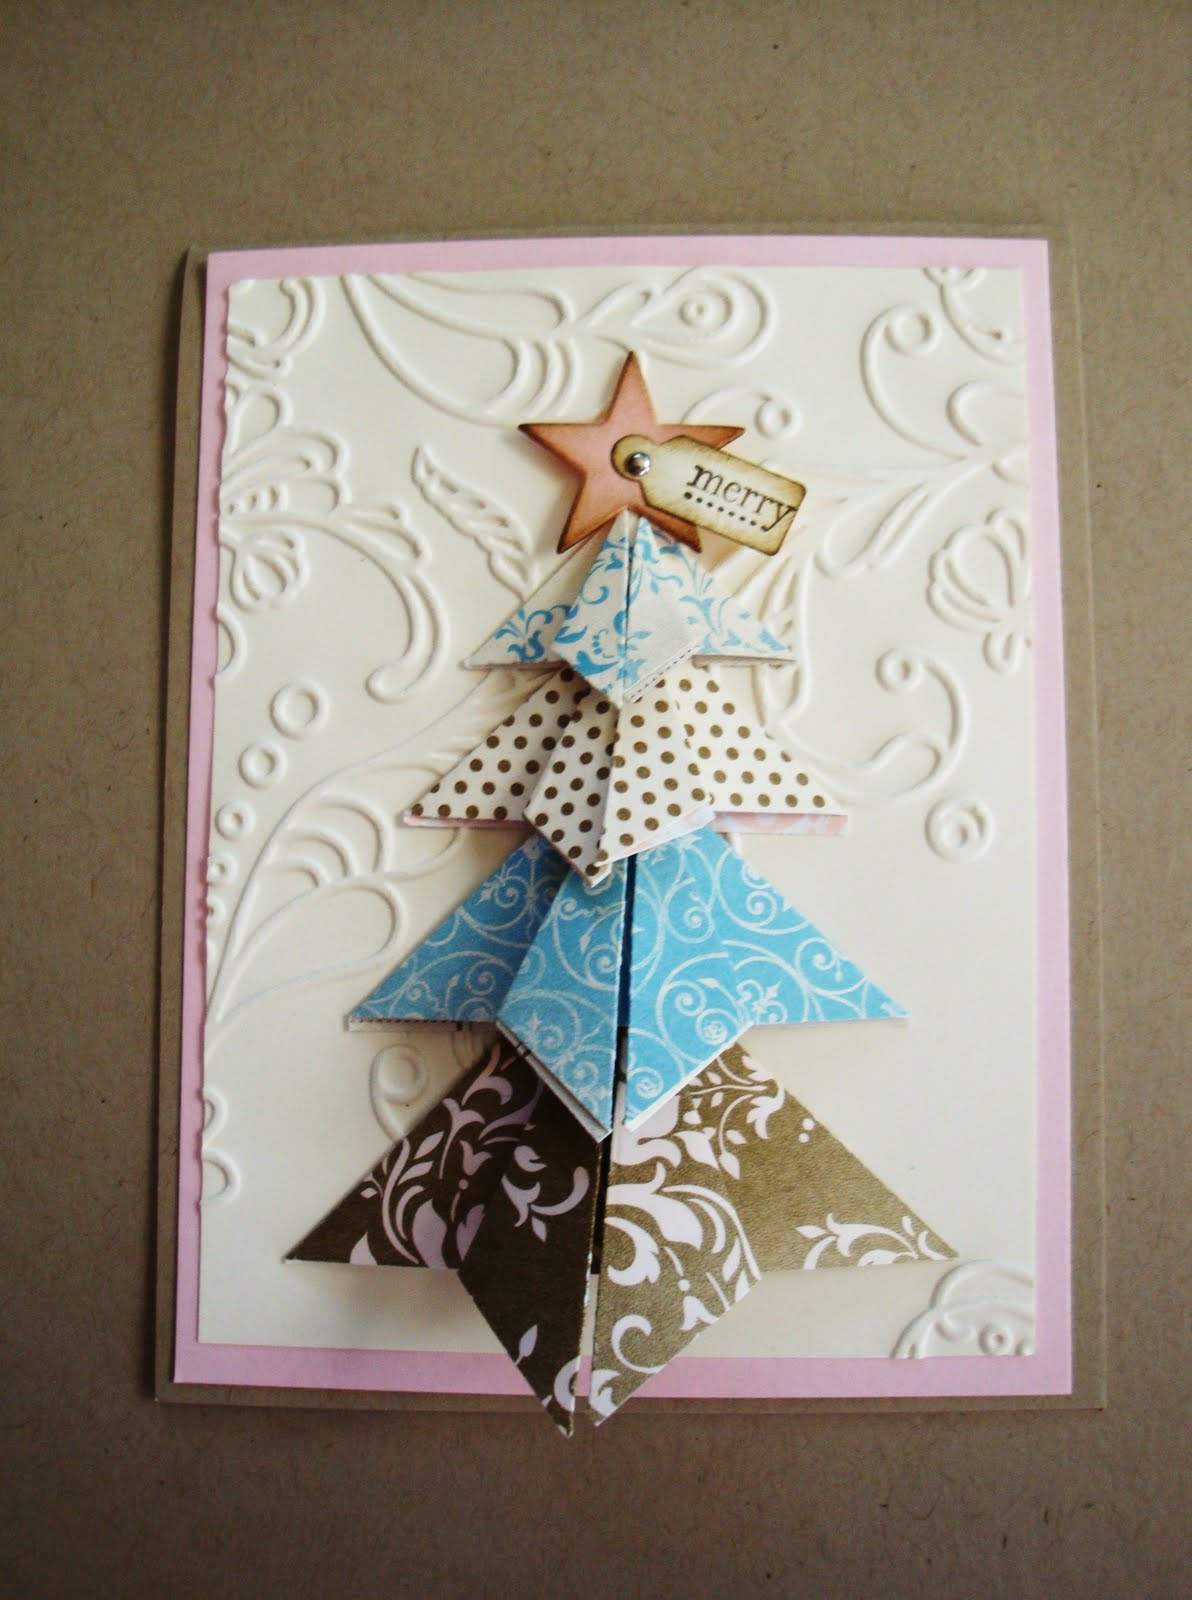 penguinstamper: Origami Christmas Tree - photo#24